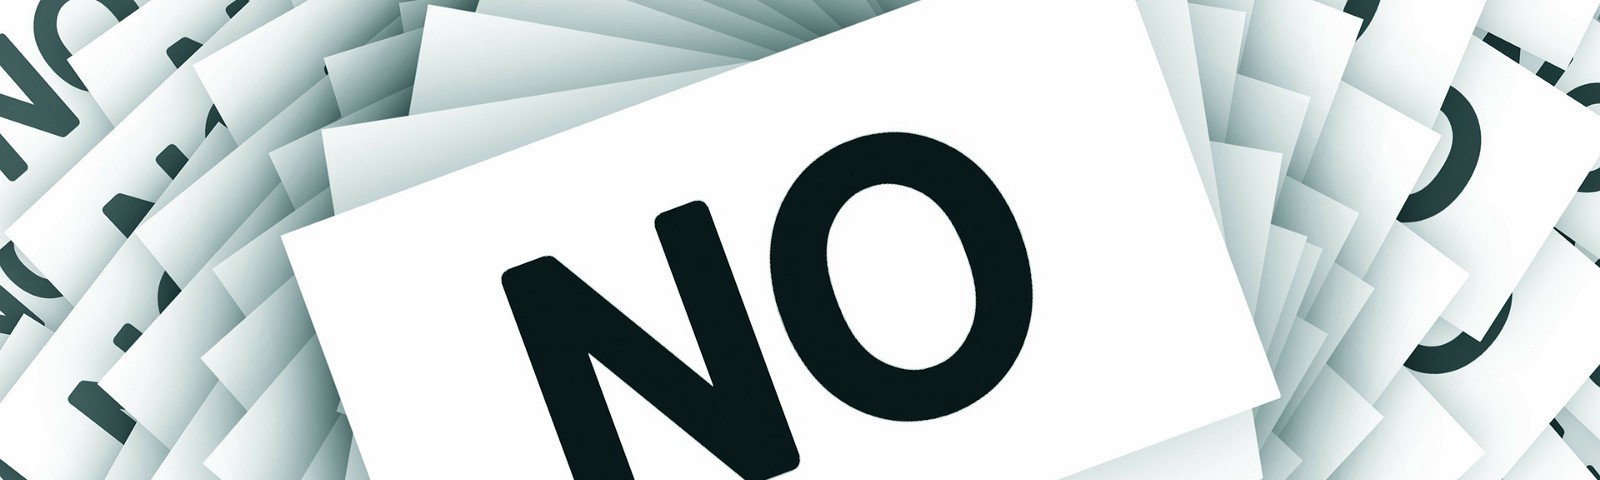 "The word ""No"" repeated over and over"